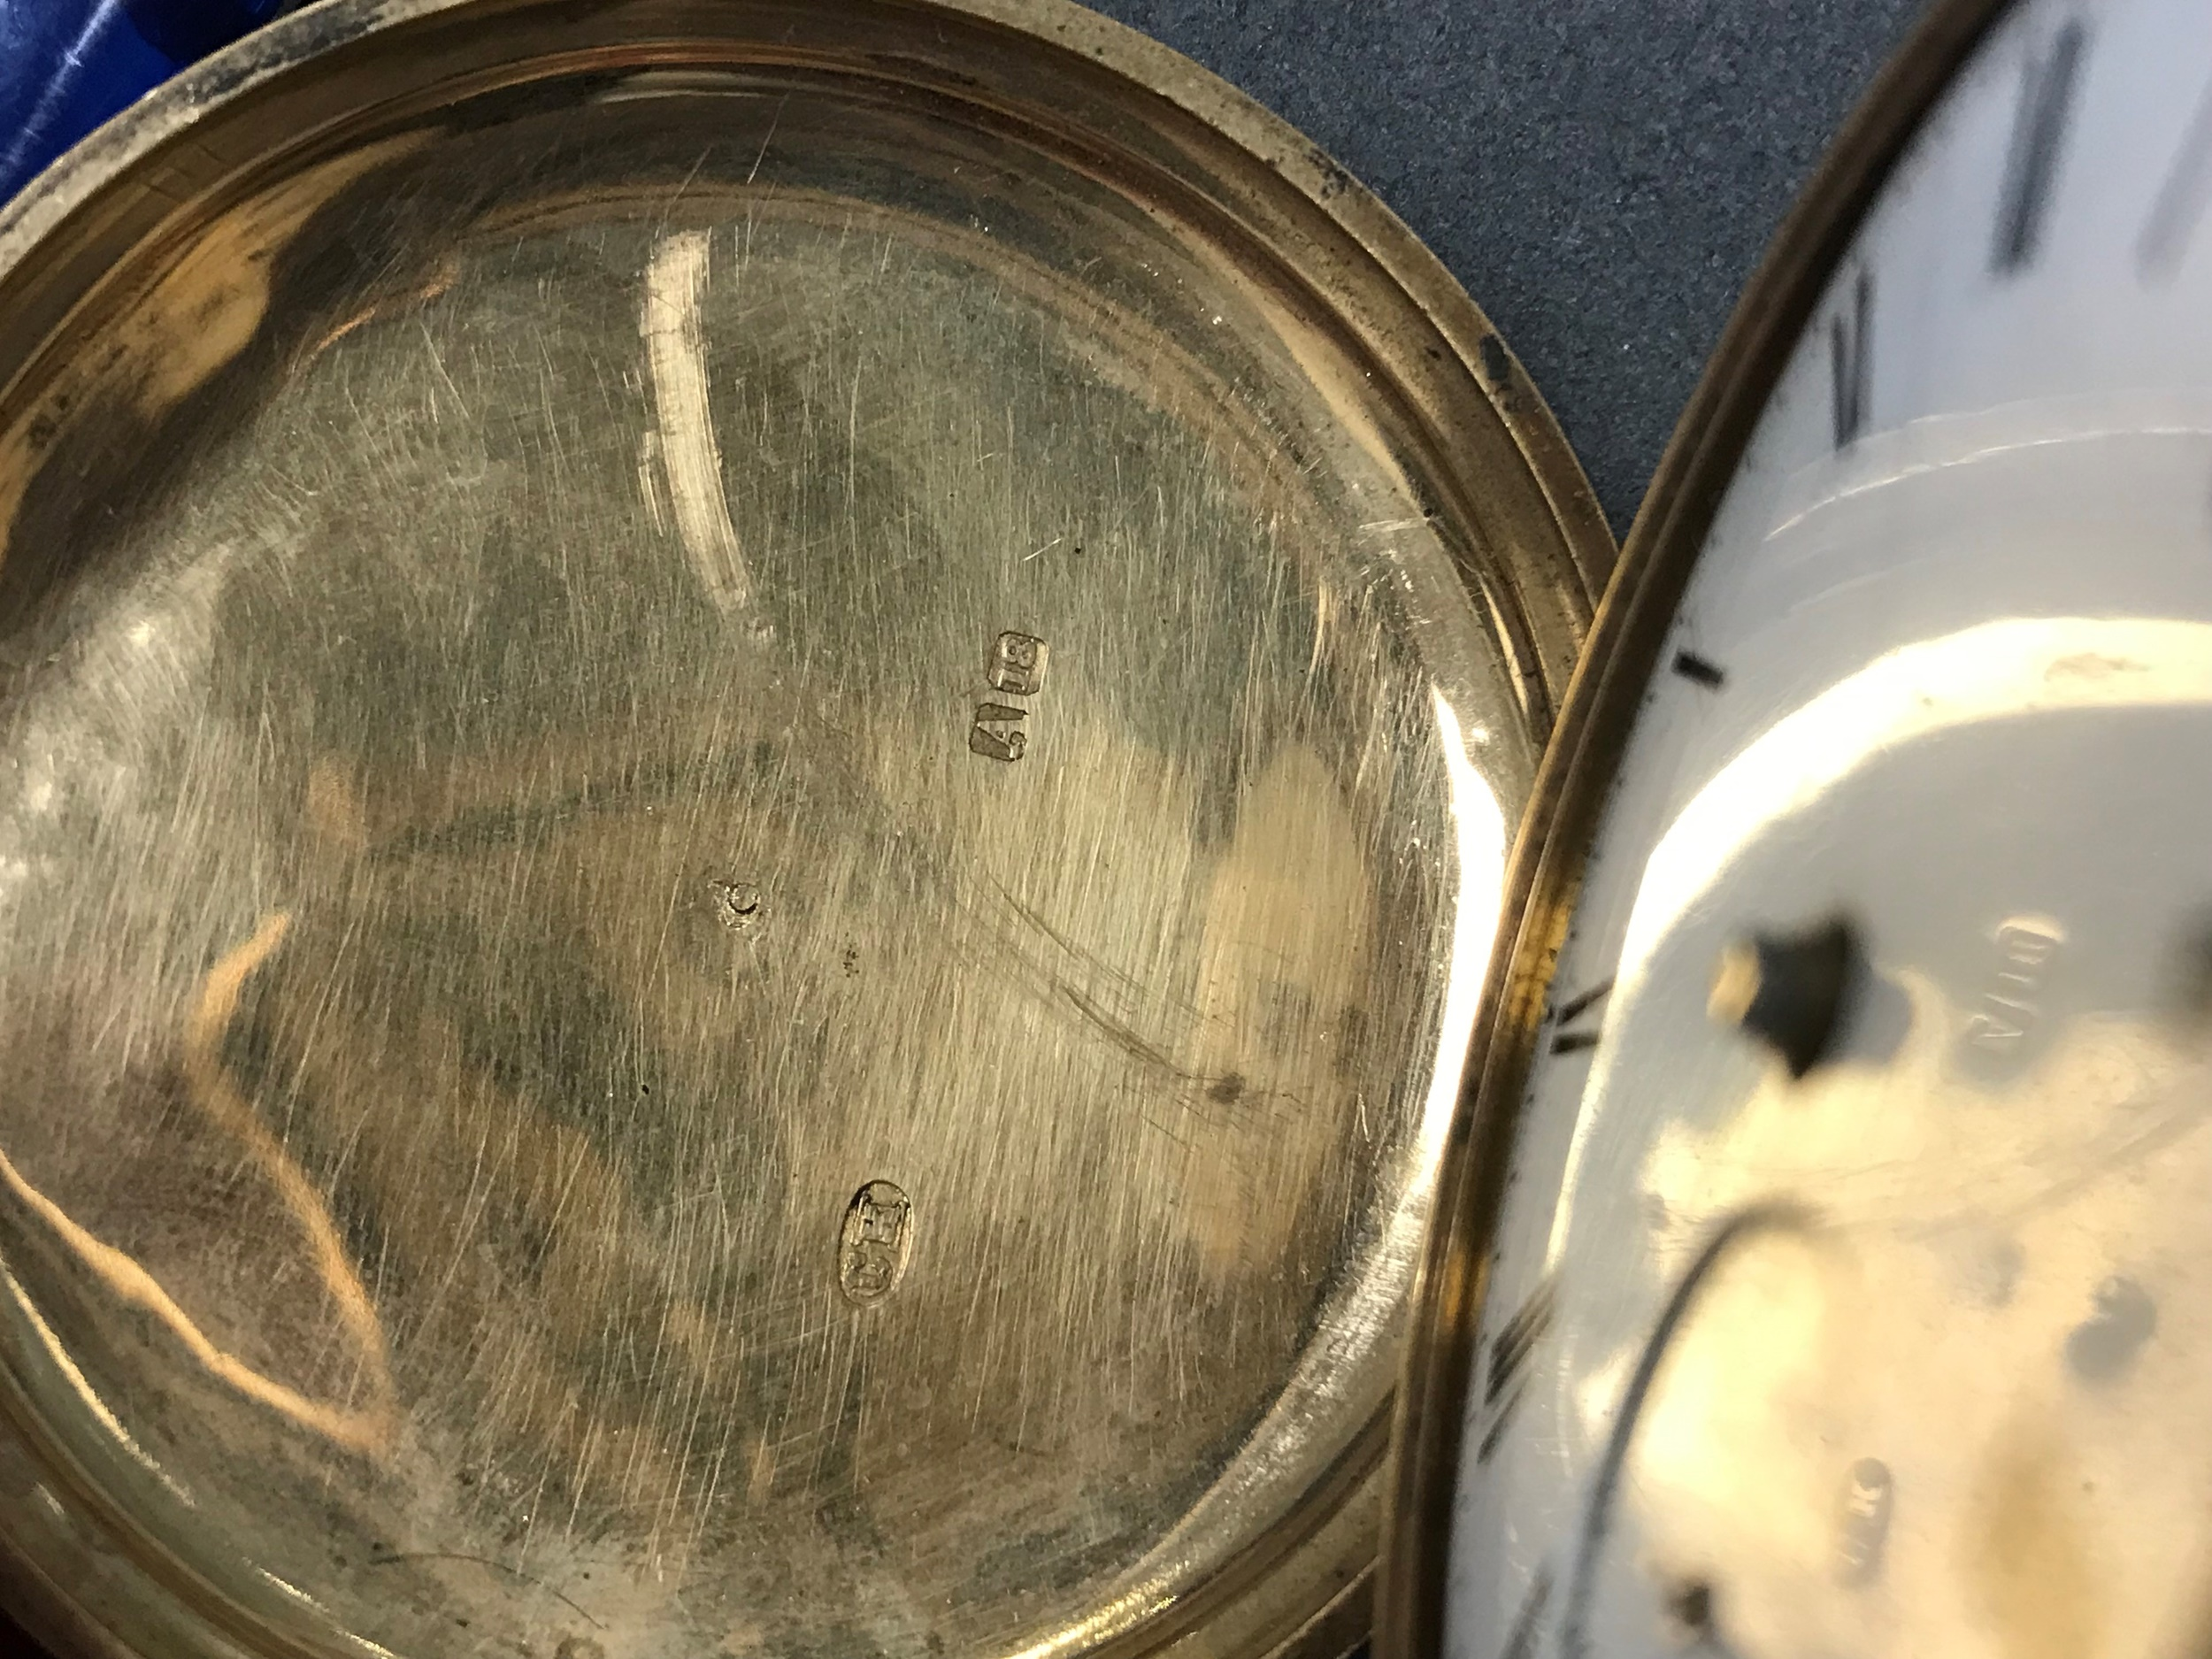 EIGHTEEN CARAT GOLD FULL HUNTER POCKET WATCH, the round white dial with Roman hour markers, - Image 4 of 6